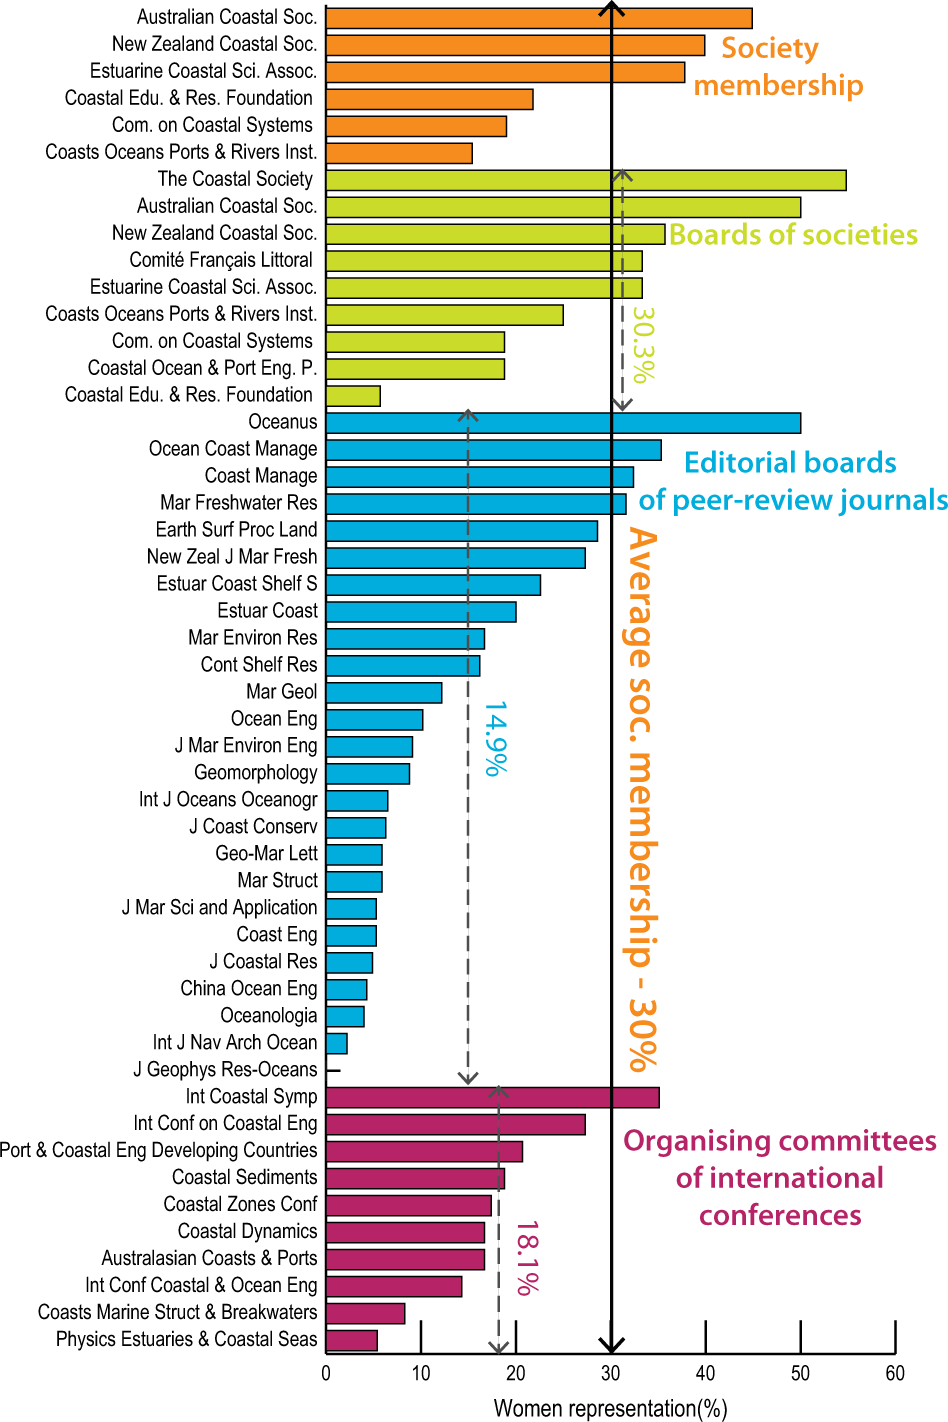 Steps to improve gender diversity in coastal geoscience and ...